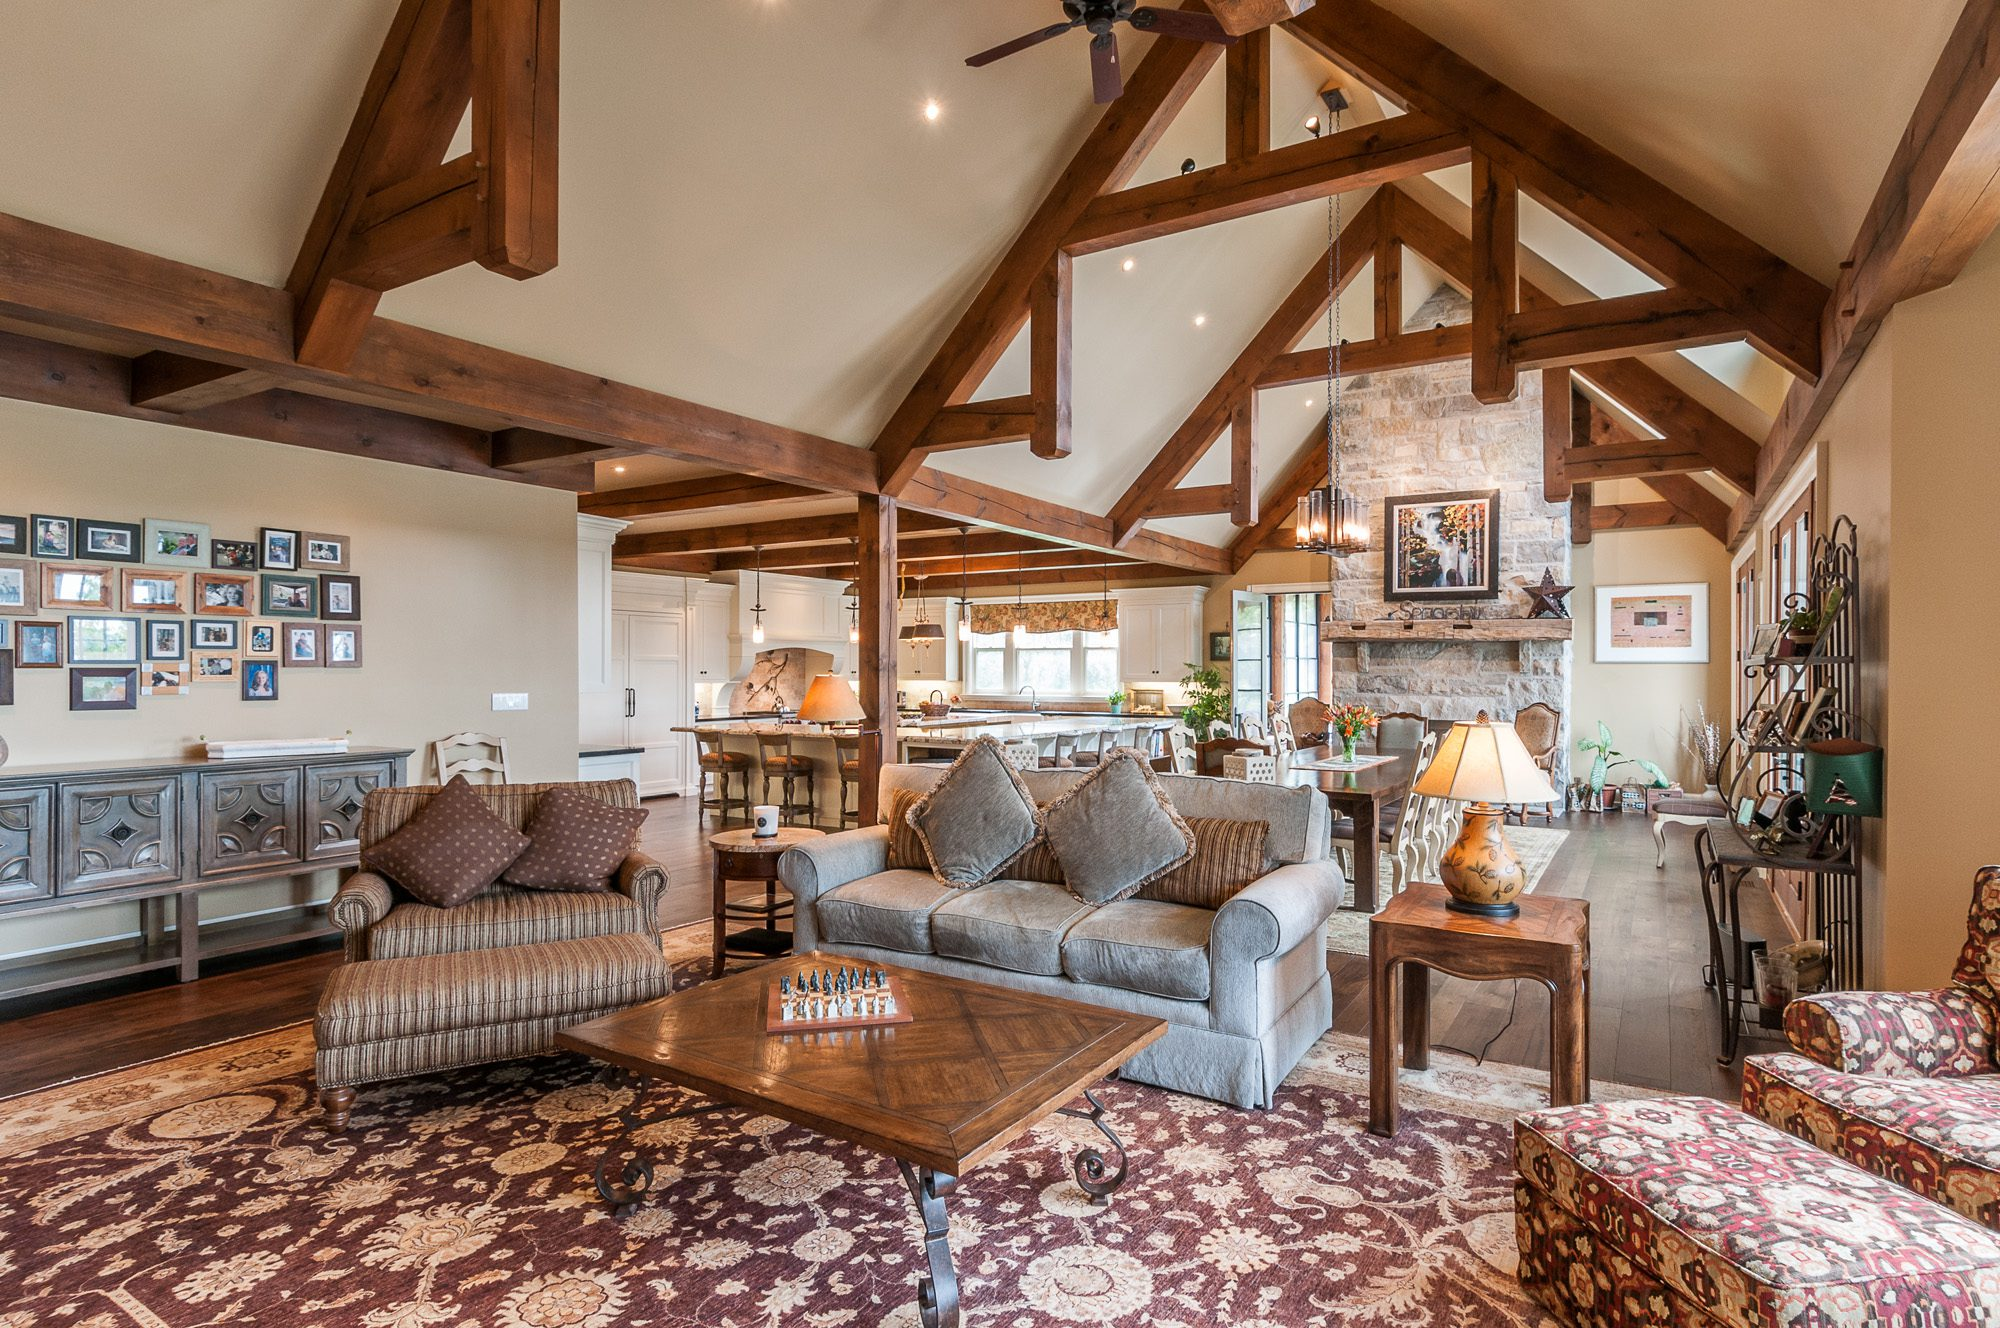 Normerica Timber Frame, Interior, Country House, Open Concept, Living Room, Great Room